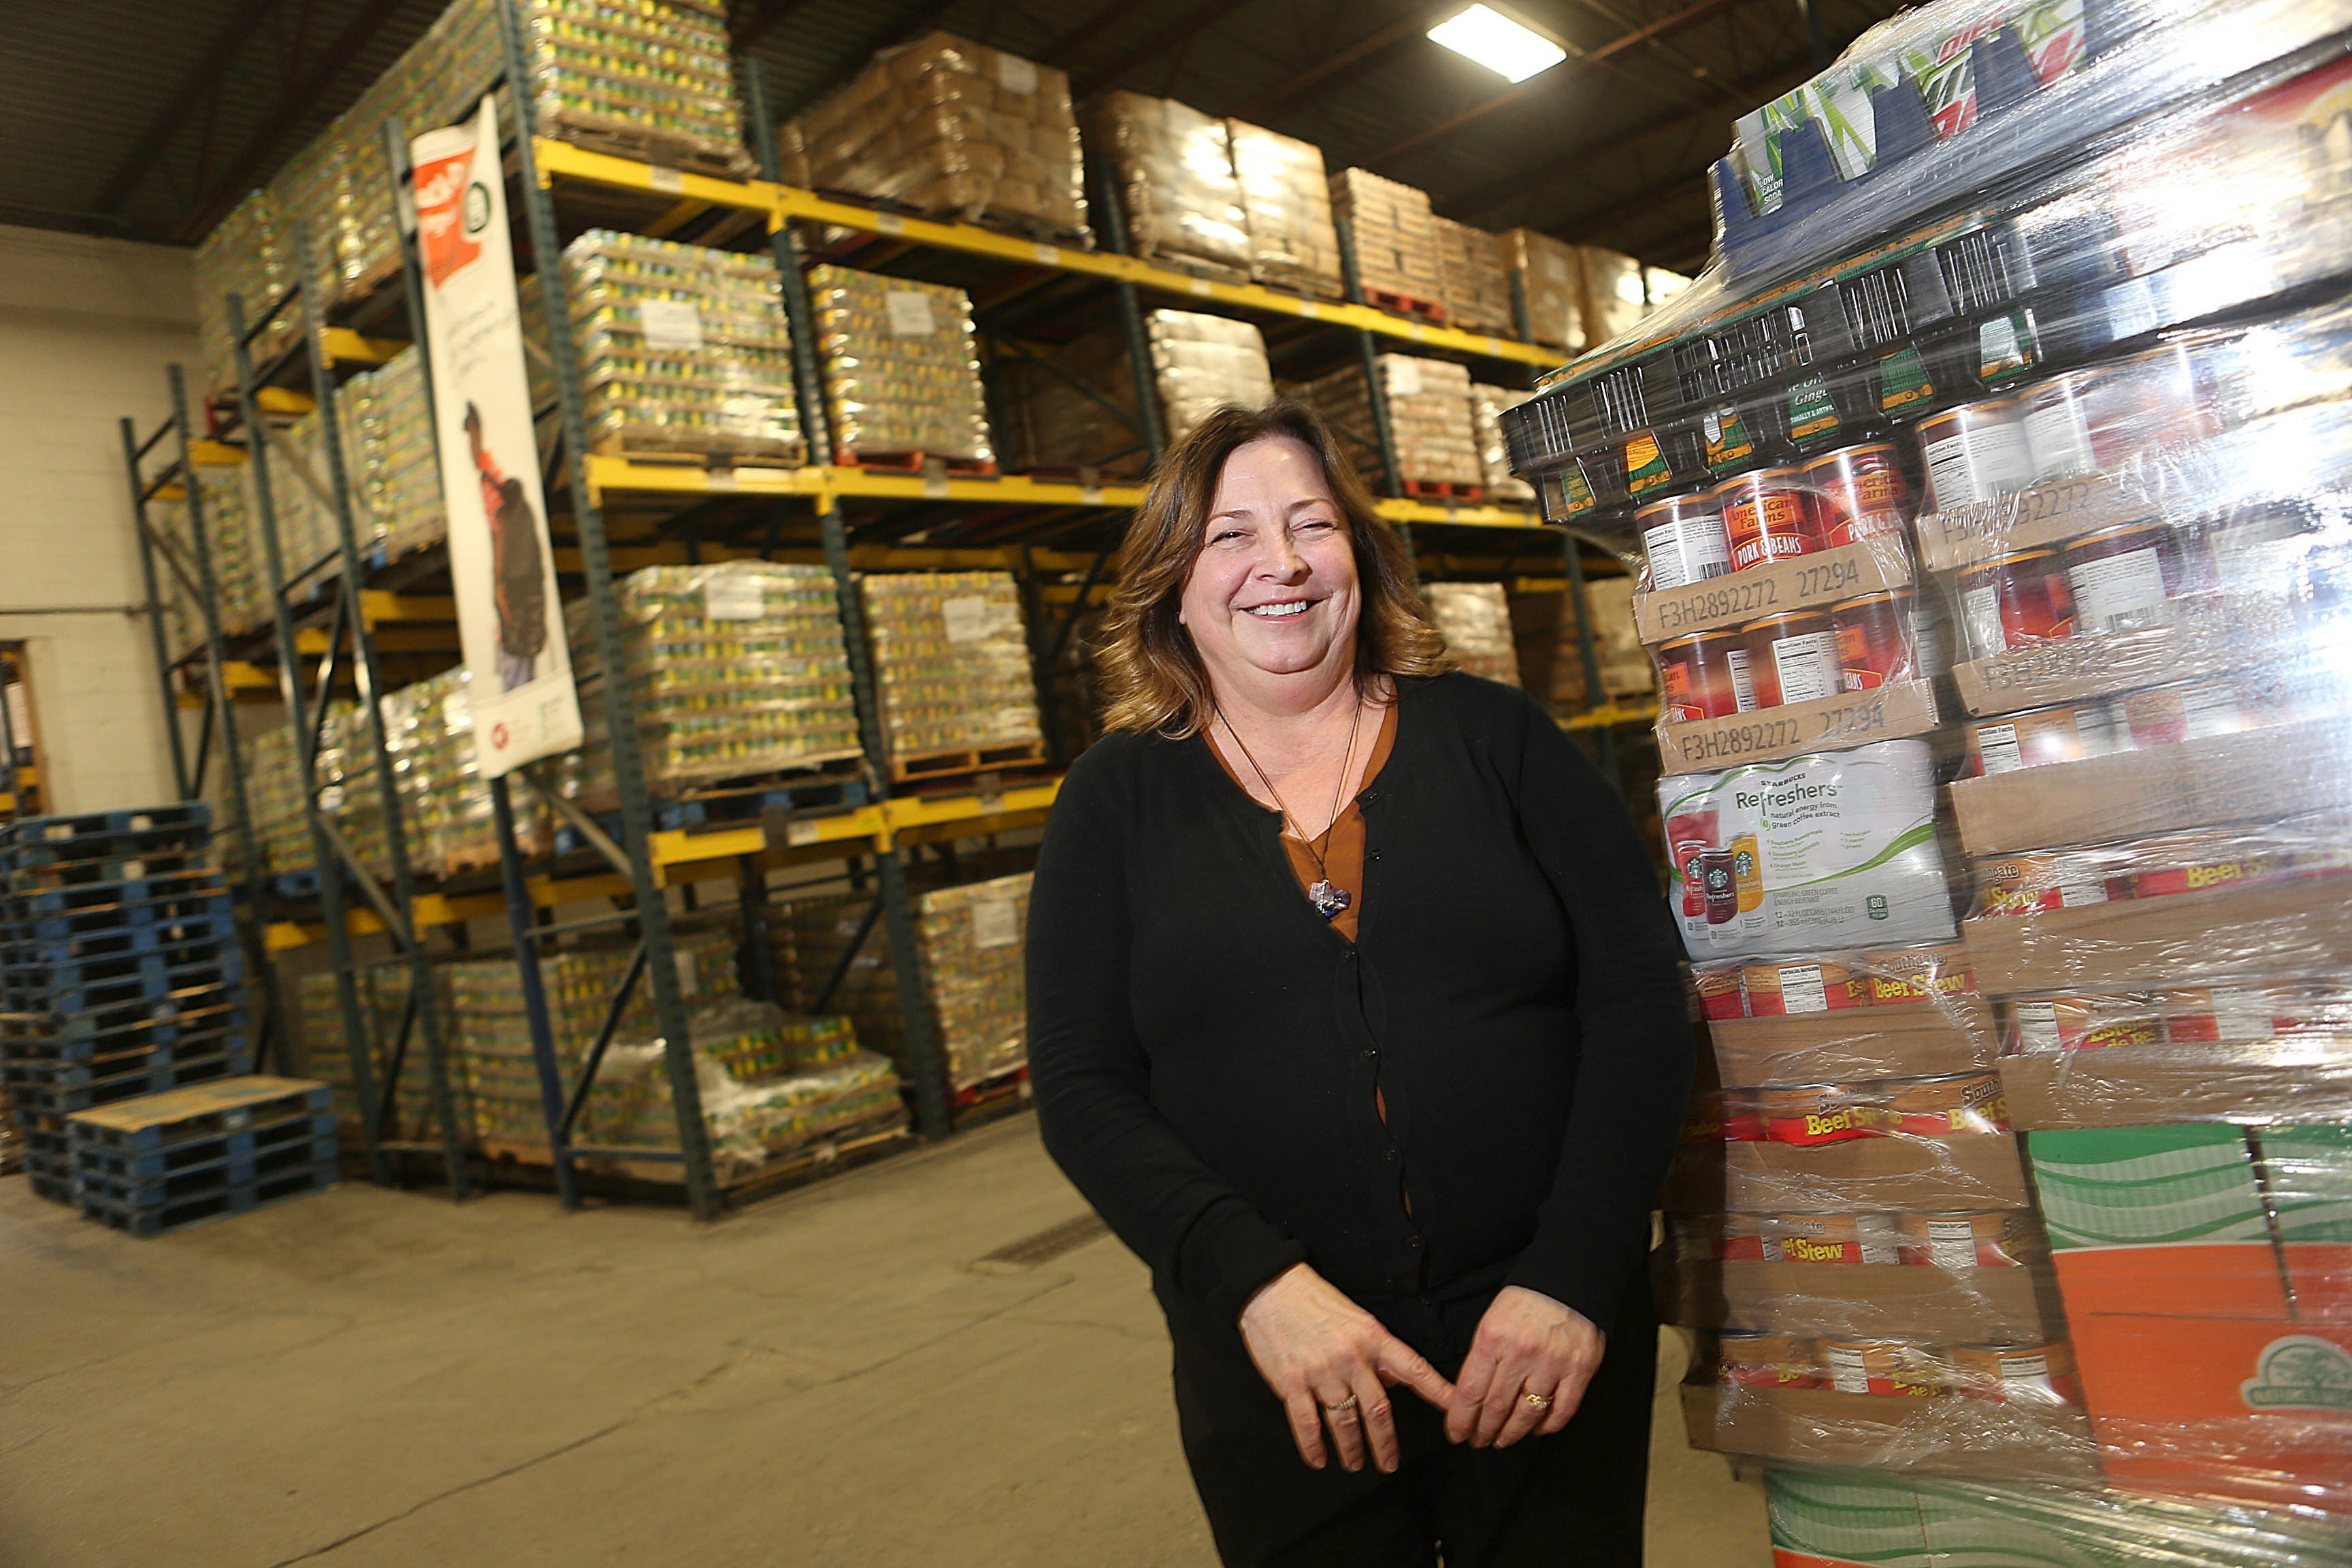 Carol Palumbo, new agency services director at the Food Bank of WNY, talks about her life of service and the challenges she faces in her new position.